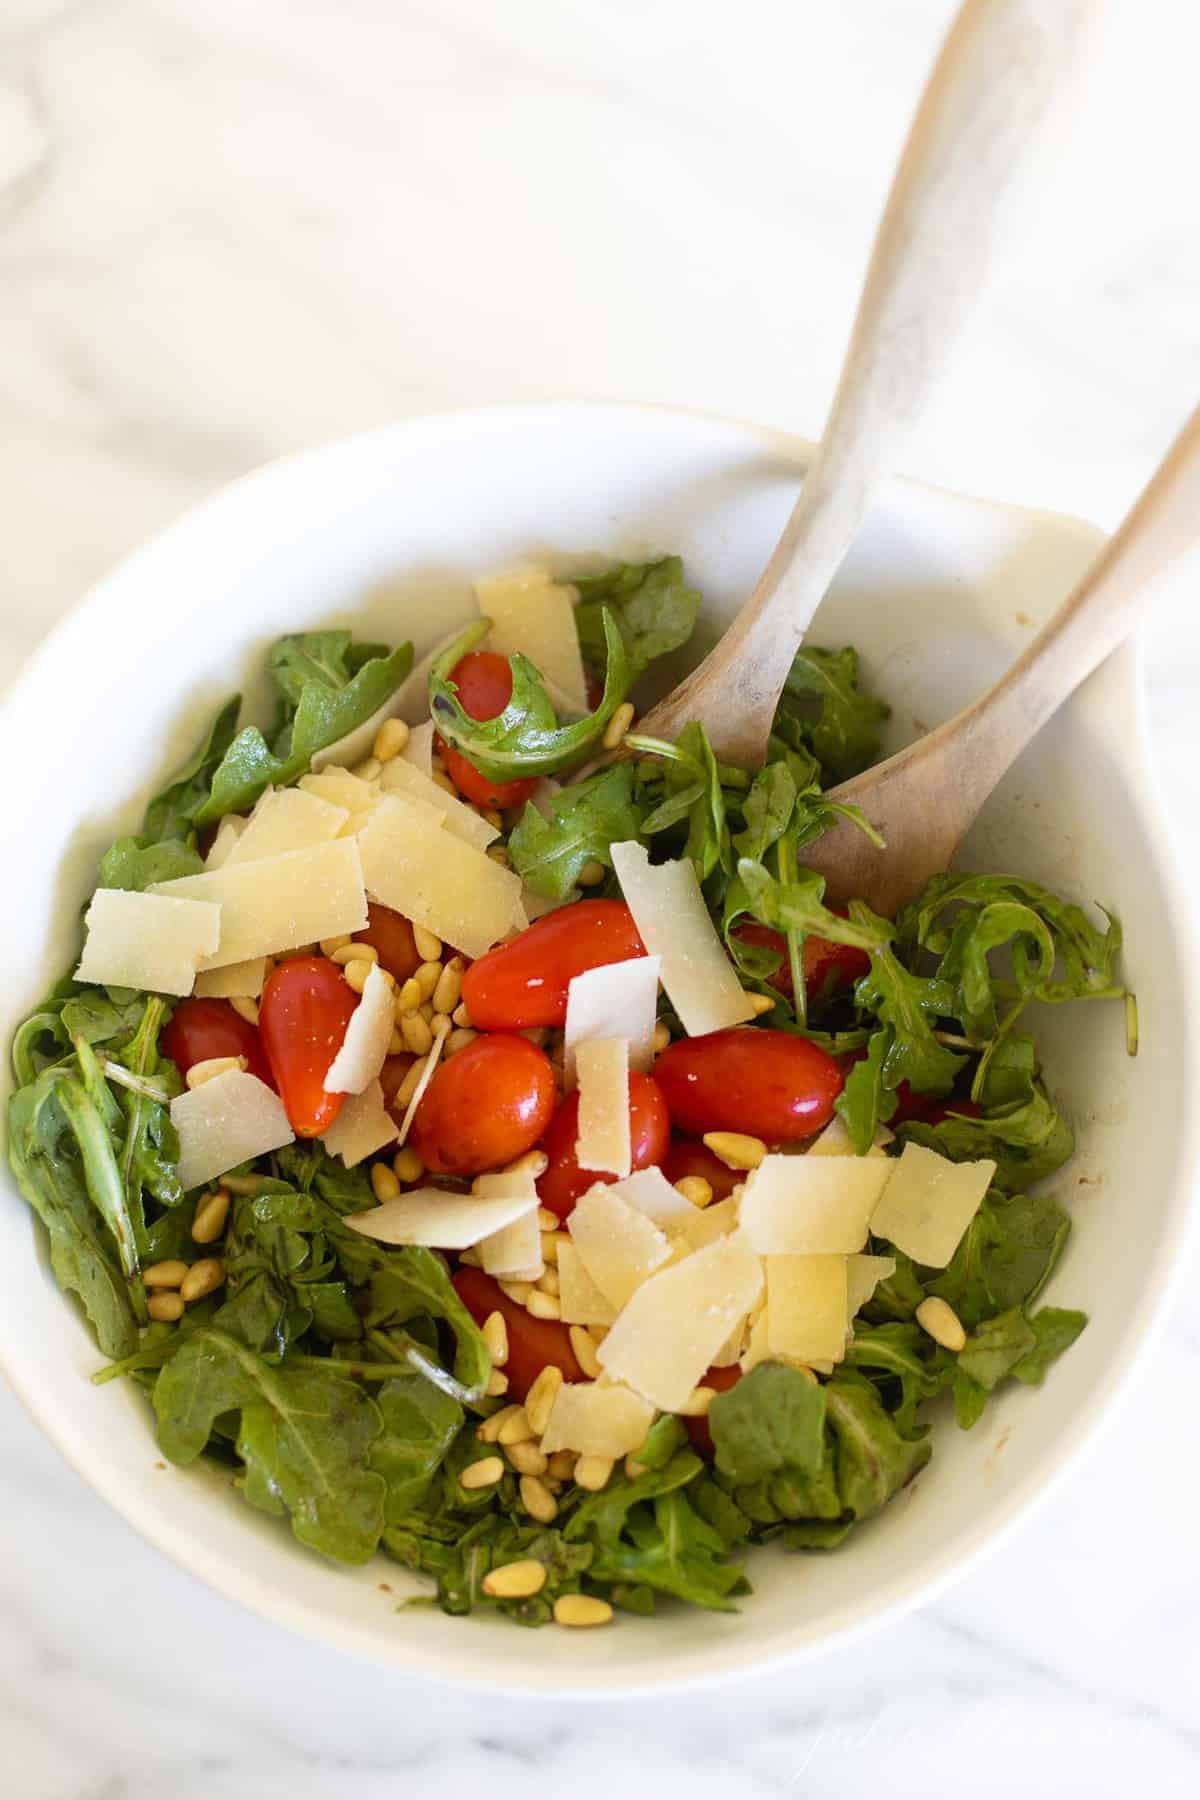 White salad bowl with bright arugula, cherry tomatoes and parmesan.